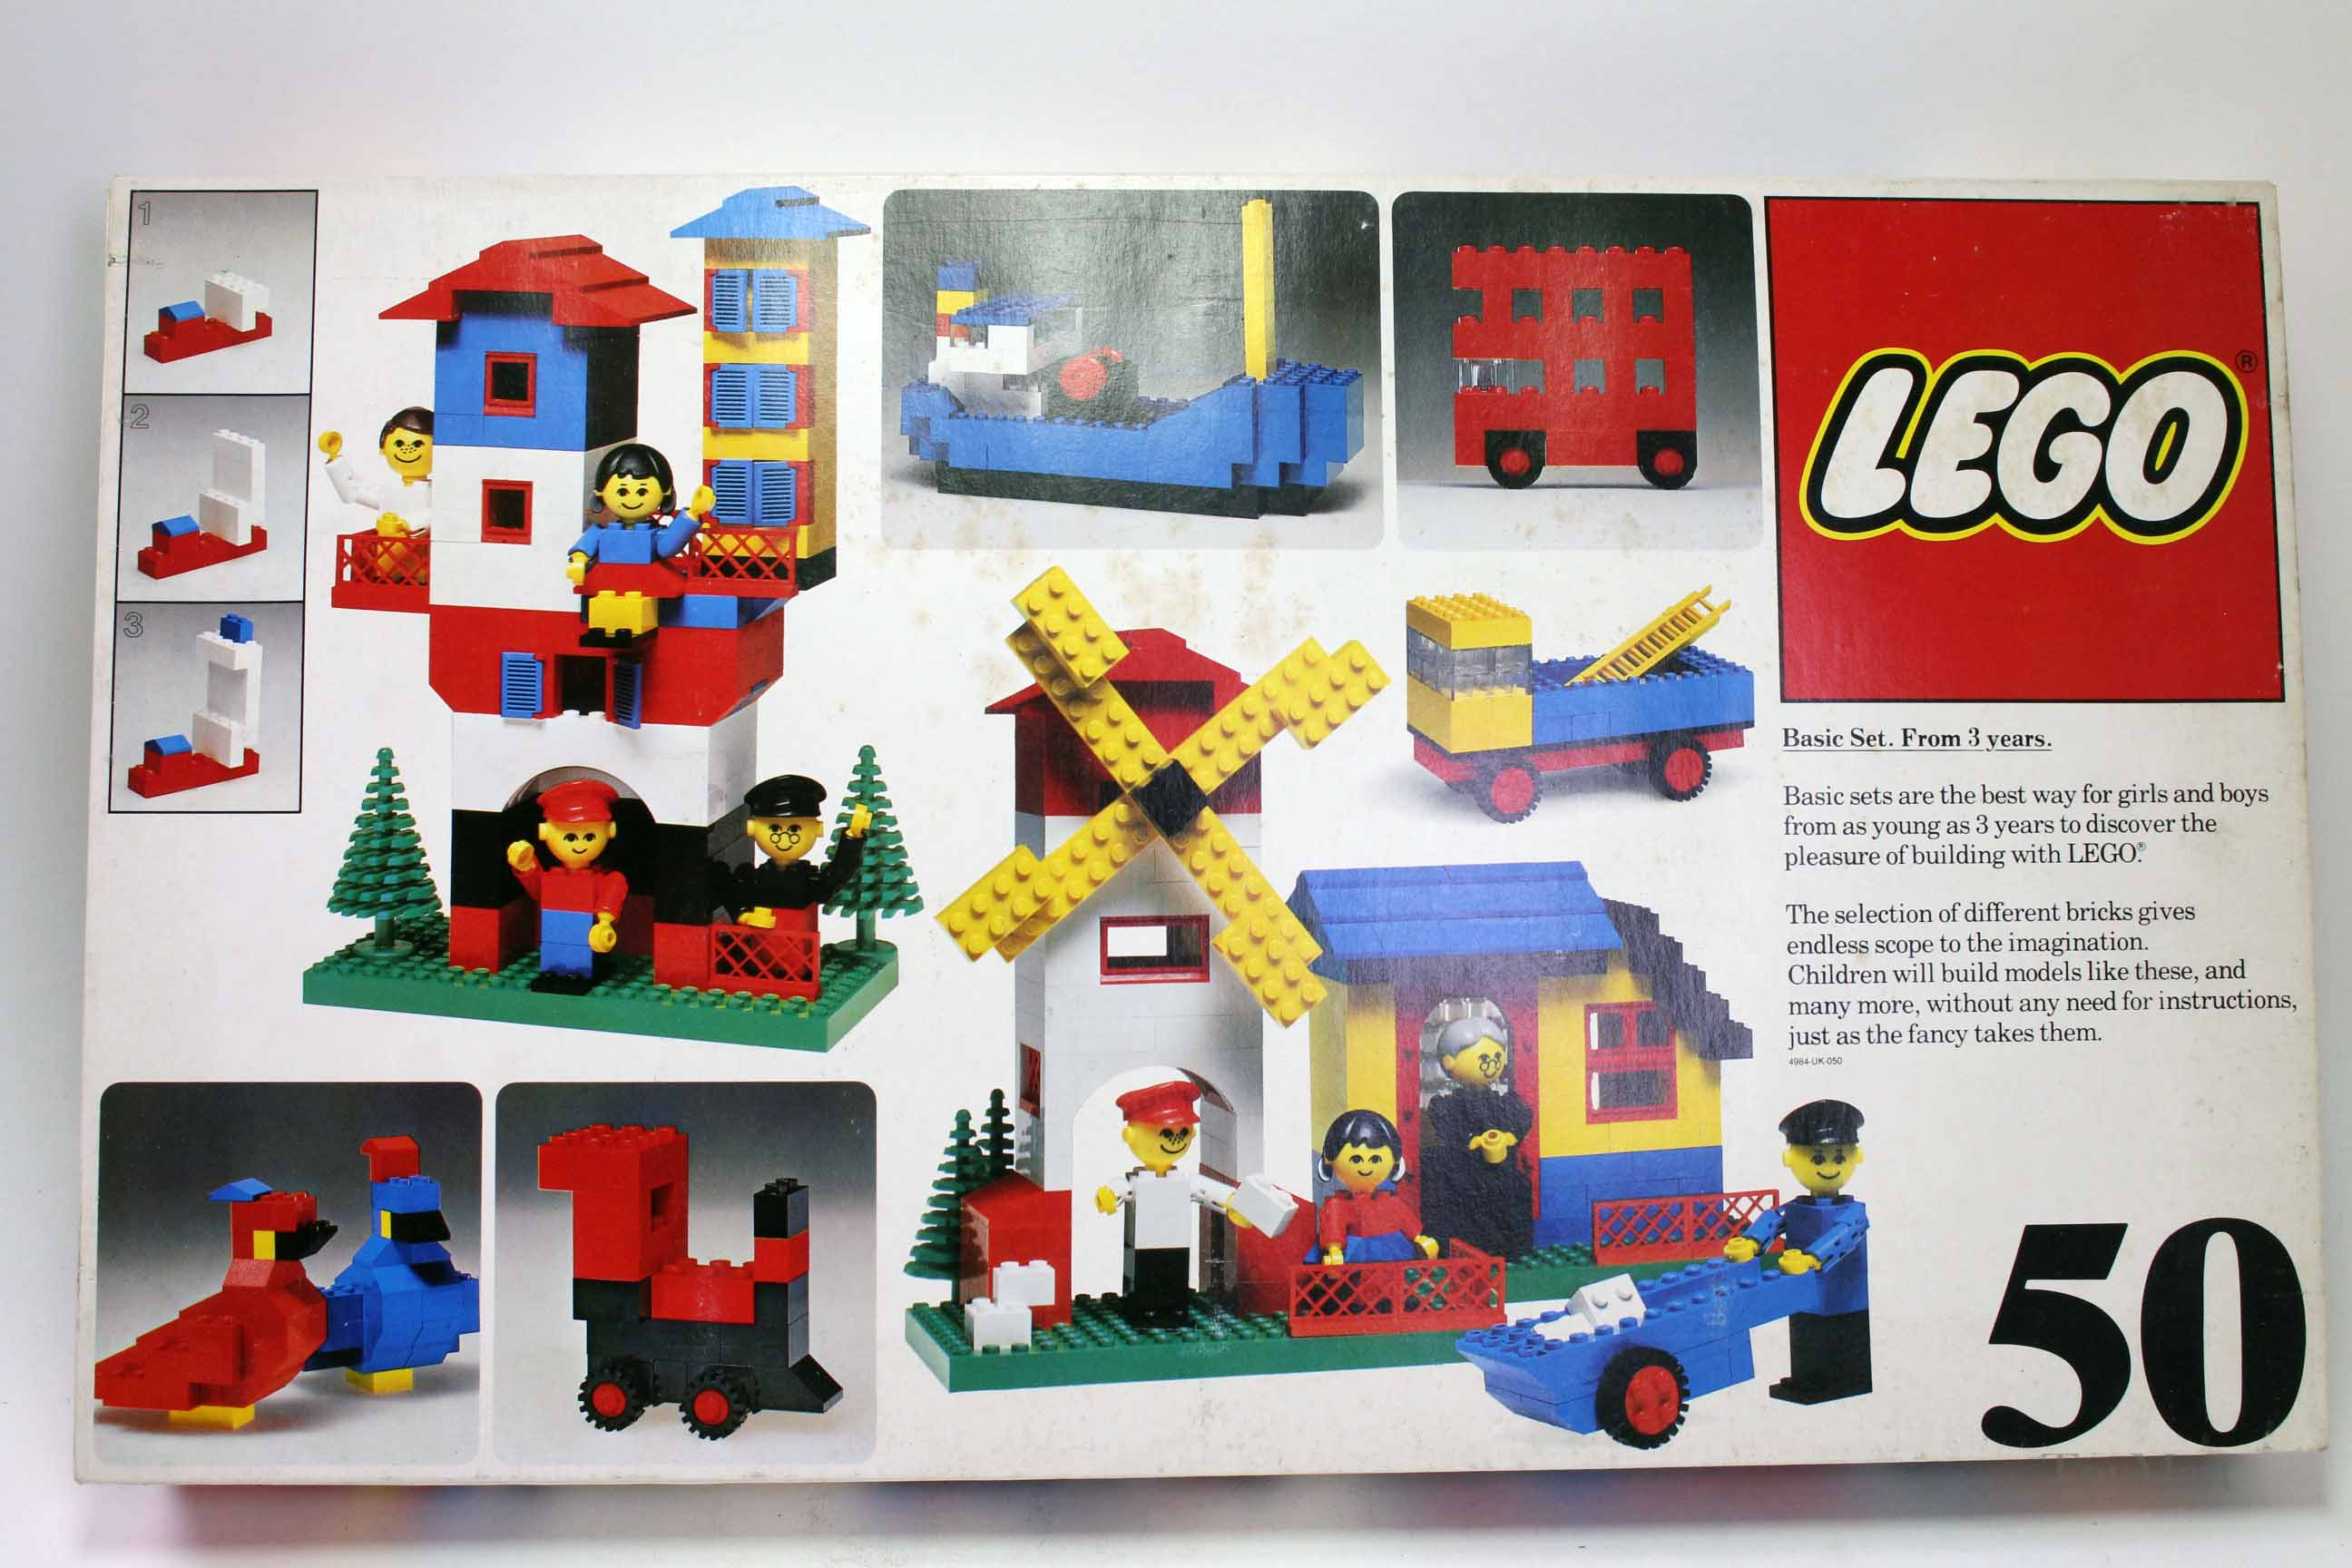 Picture Gallery for Lego 50 1976 Basic Set